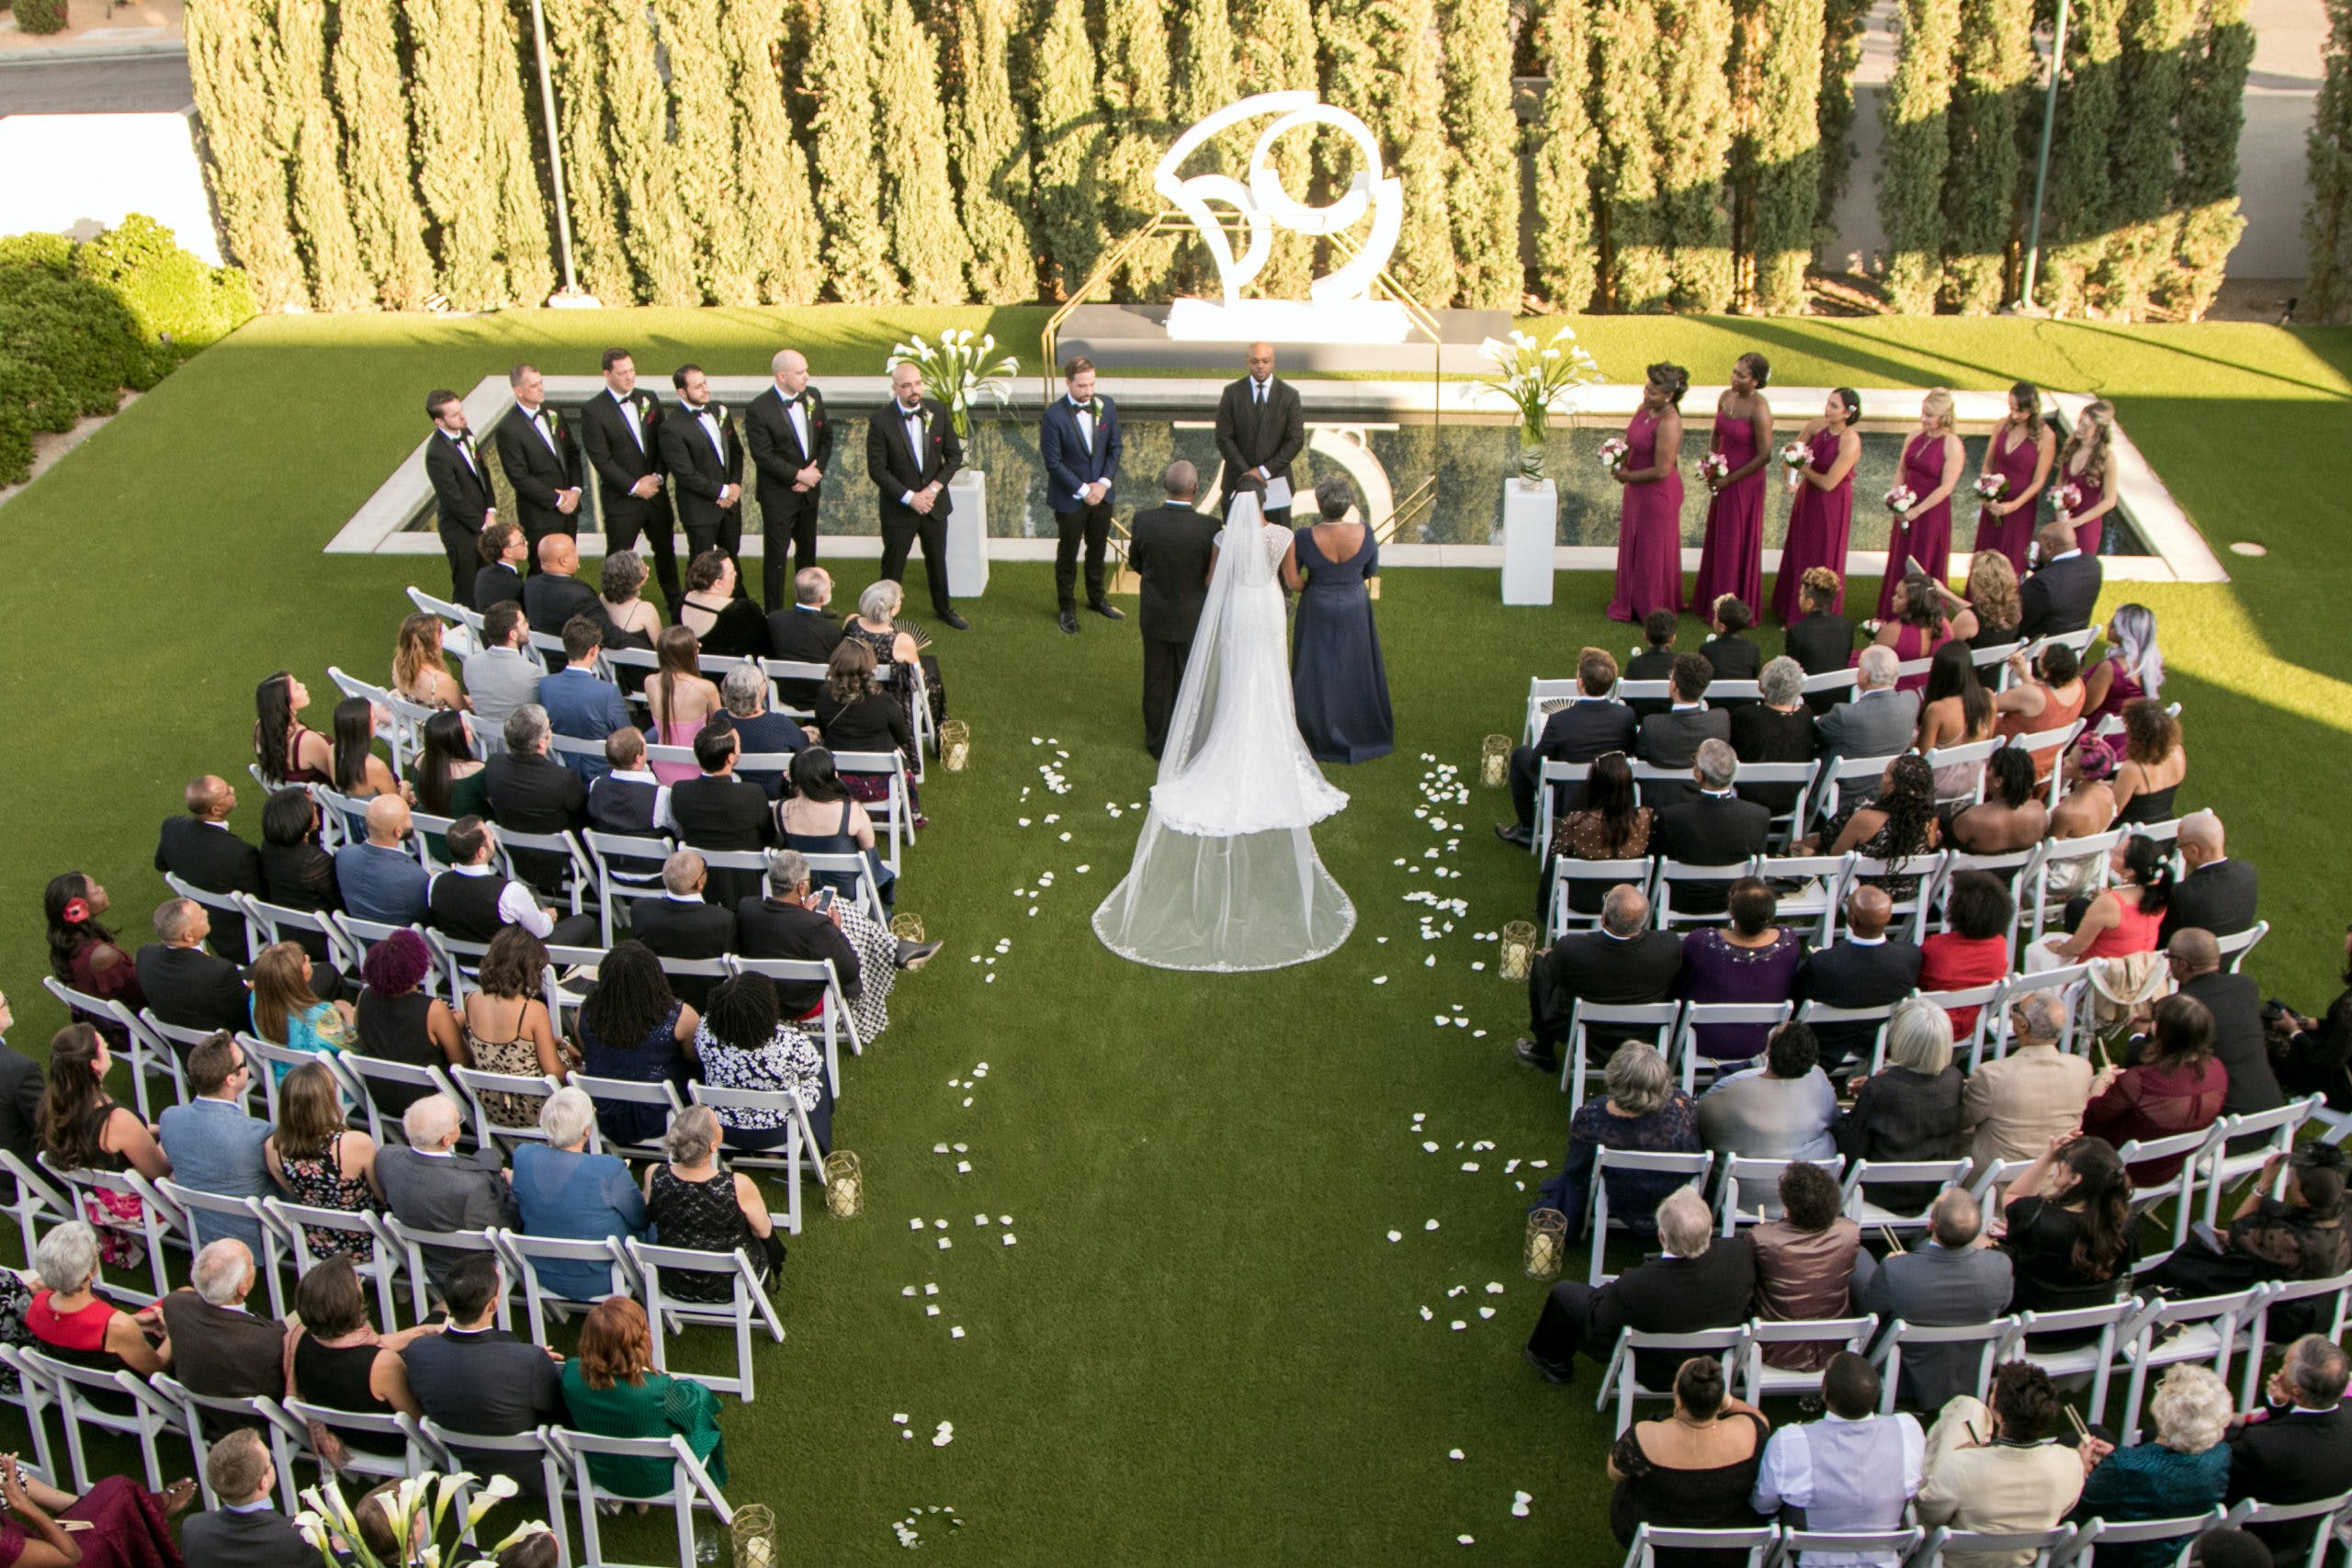 An aerial view of outdoor wedding ceremony   PartySlate